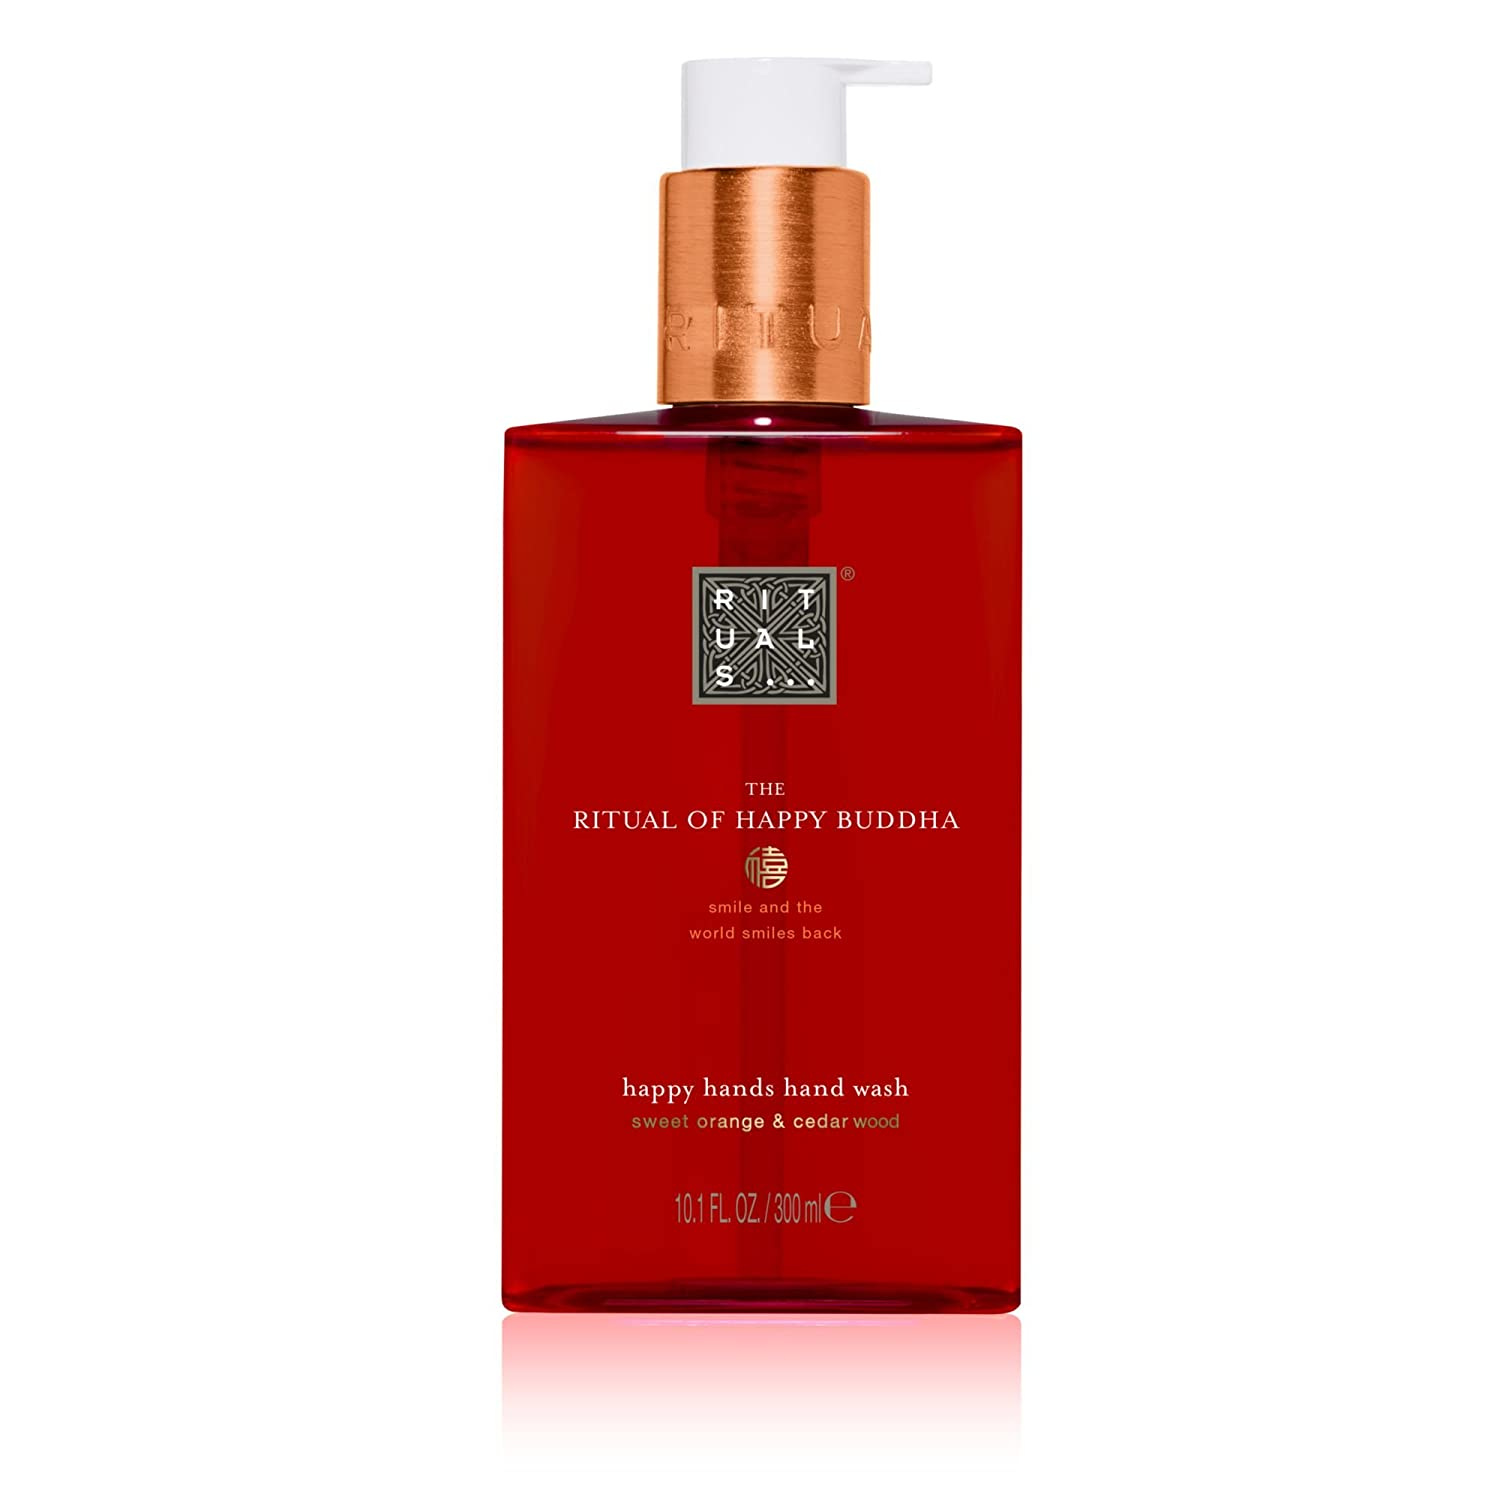 Rituals The Ritual of Happy Buddha Handseife, 300 ml 1101549